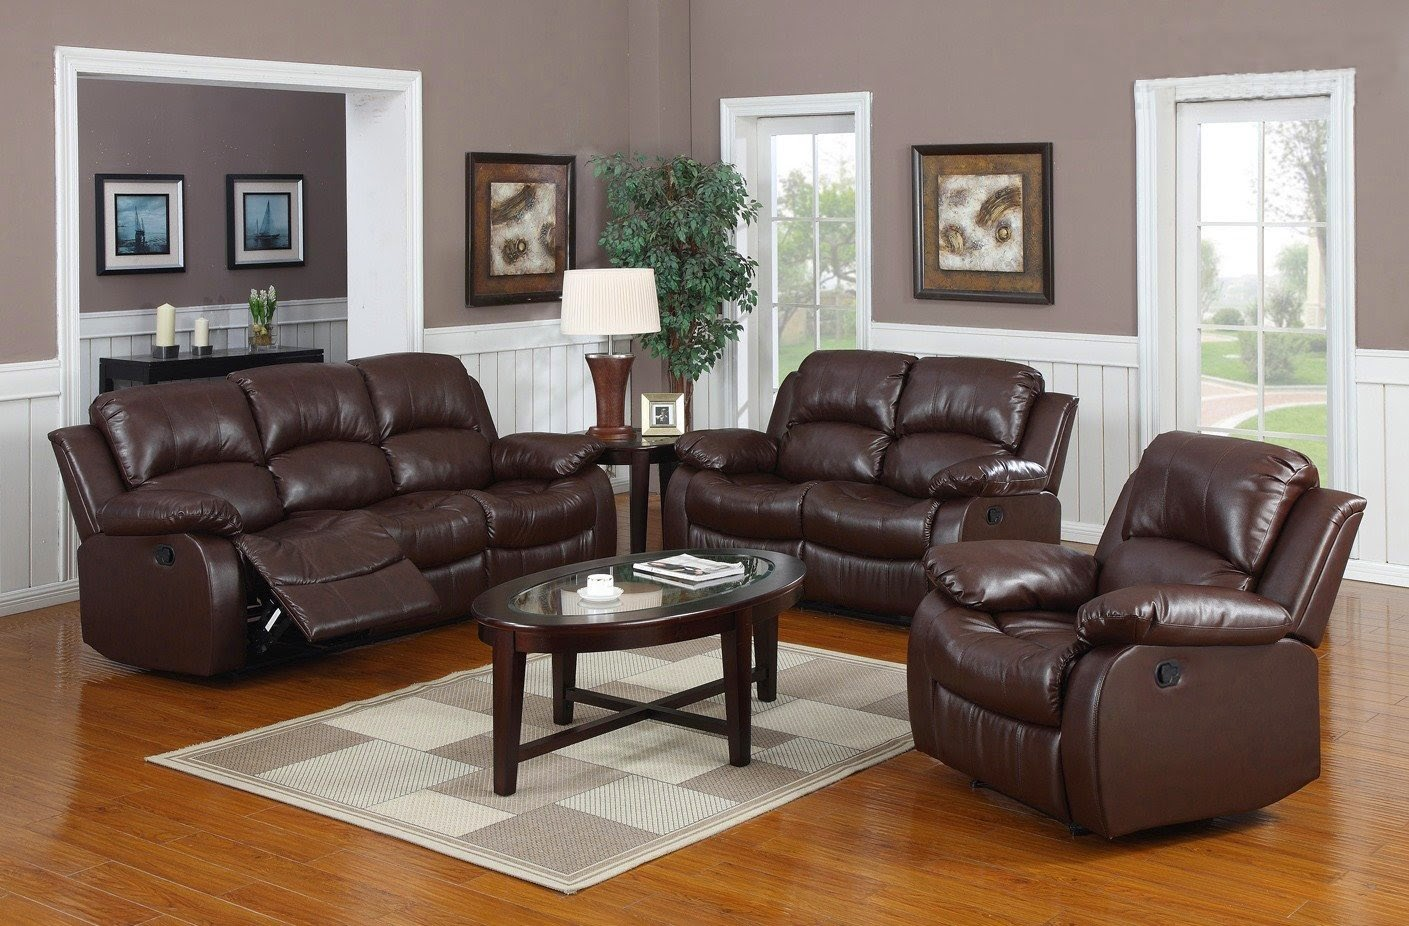 Leather Couch And Sofa Set Cheap Reclining Sofas Sale Leather Reclining Sofa Costco